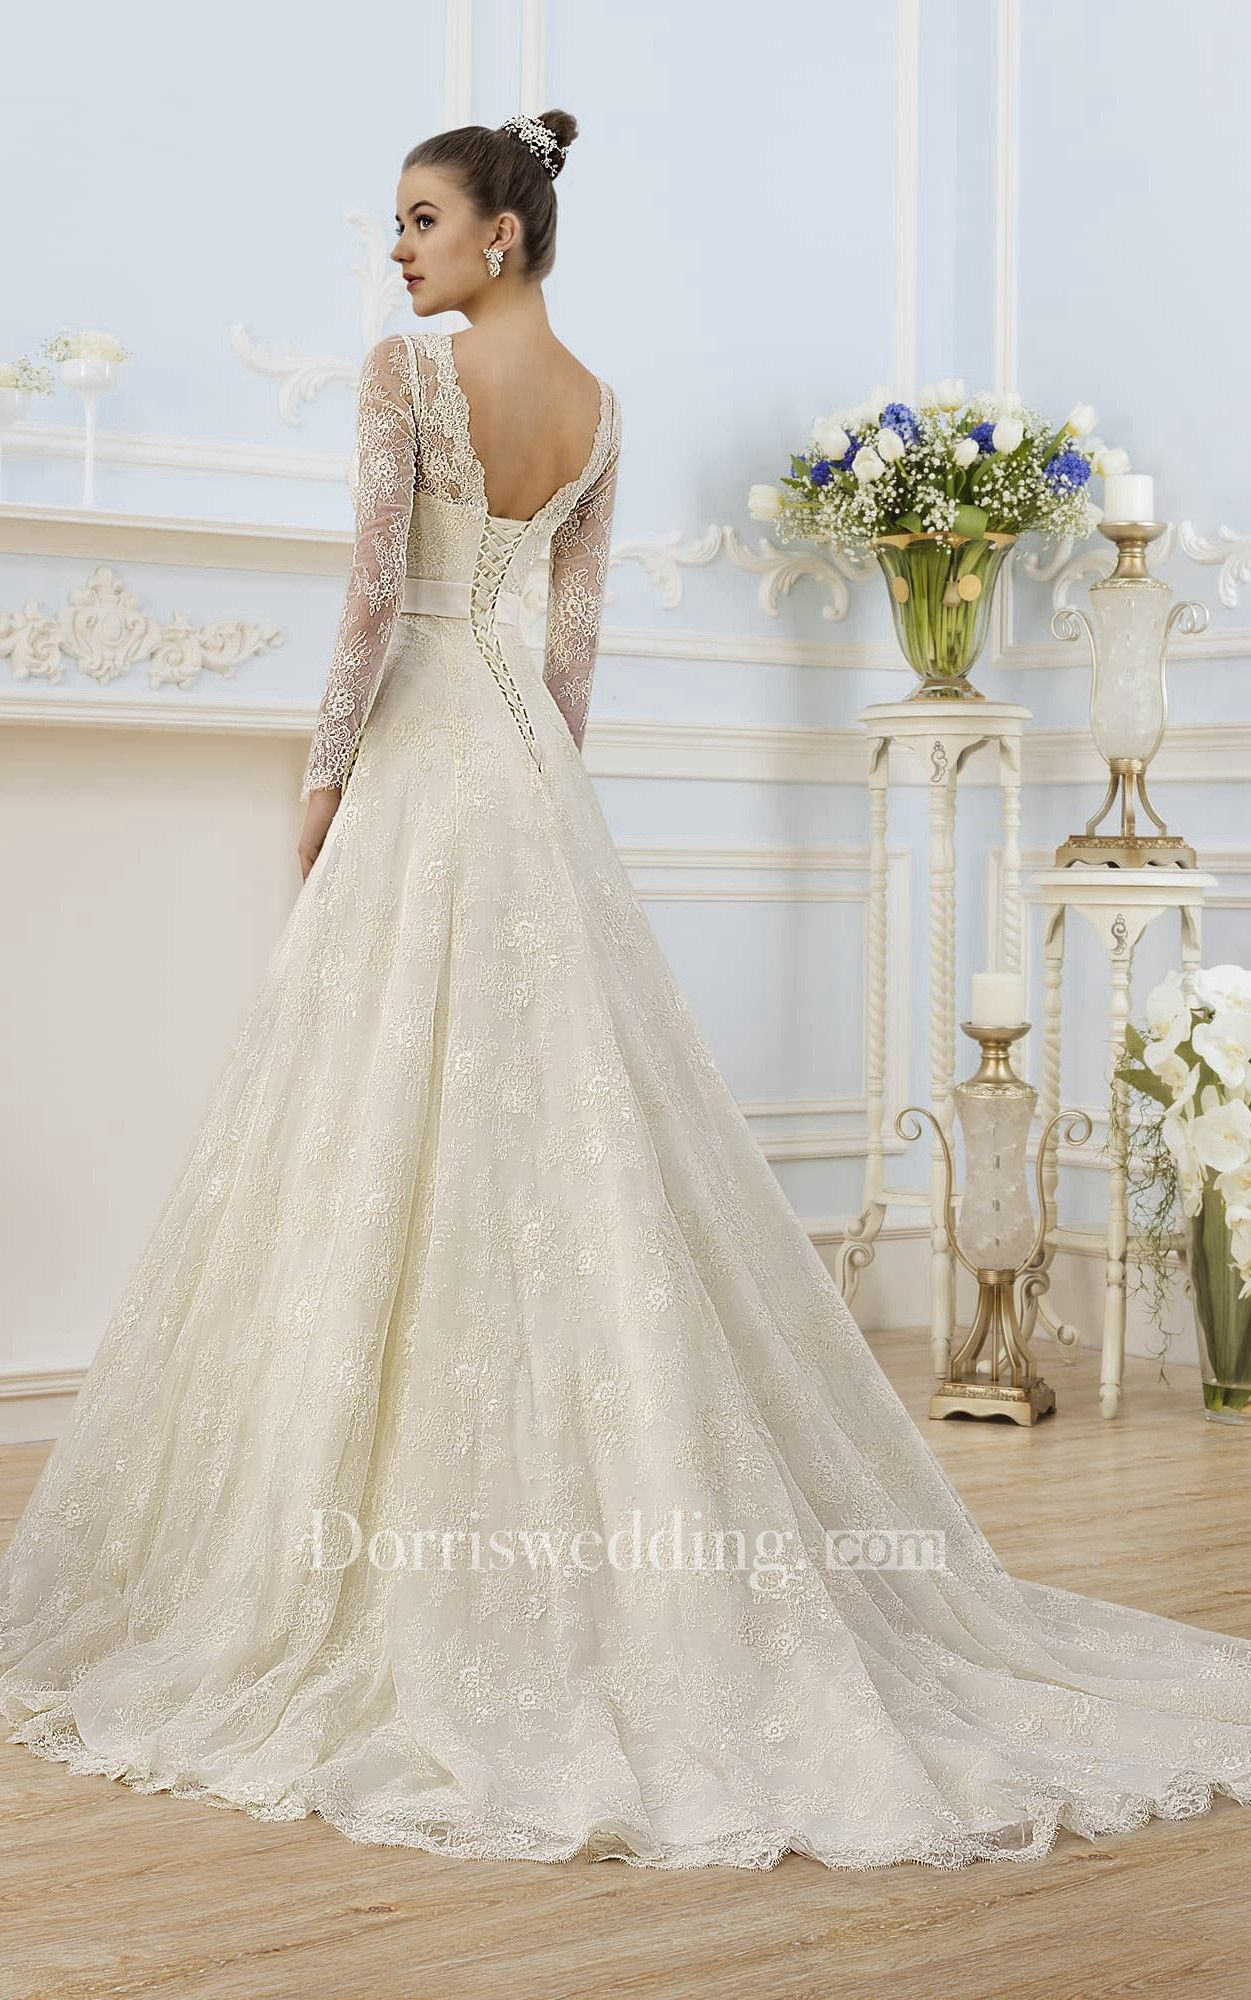 A Line Floor Length V Neck Illusion Sleeve Corset Back Lace Dress With Appliques And Bow Wedding Dresses Corset Wedding Dresses Lace Wedding Dresses